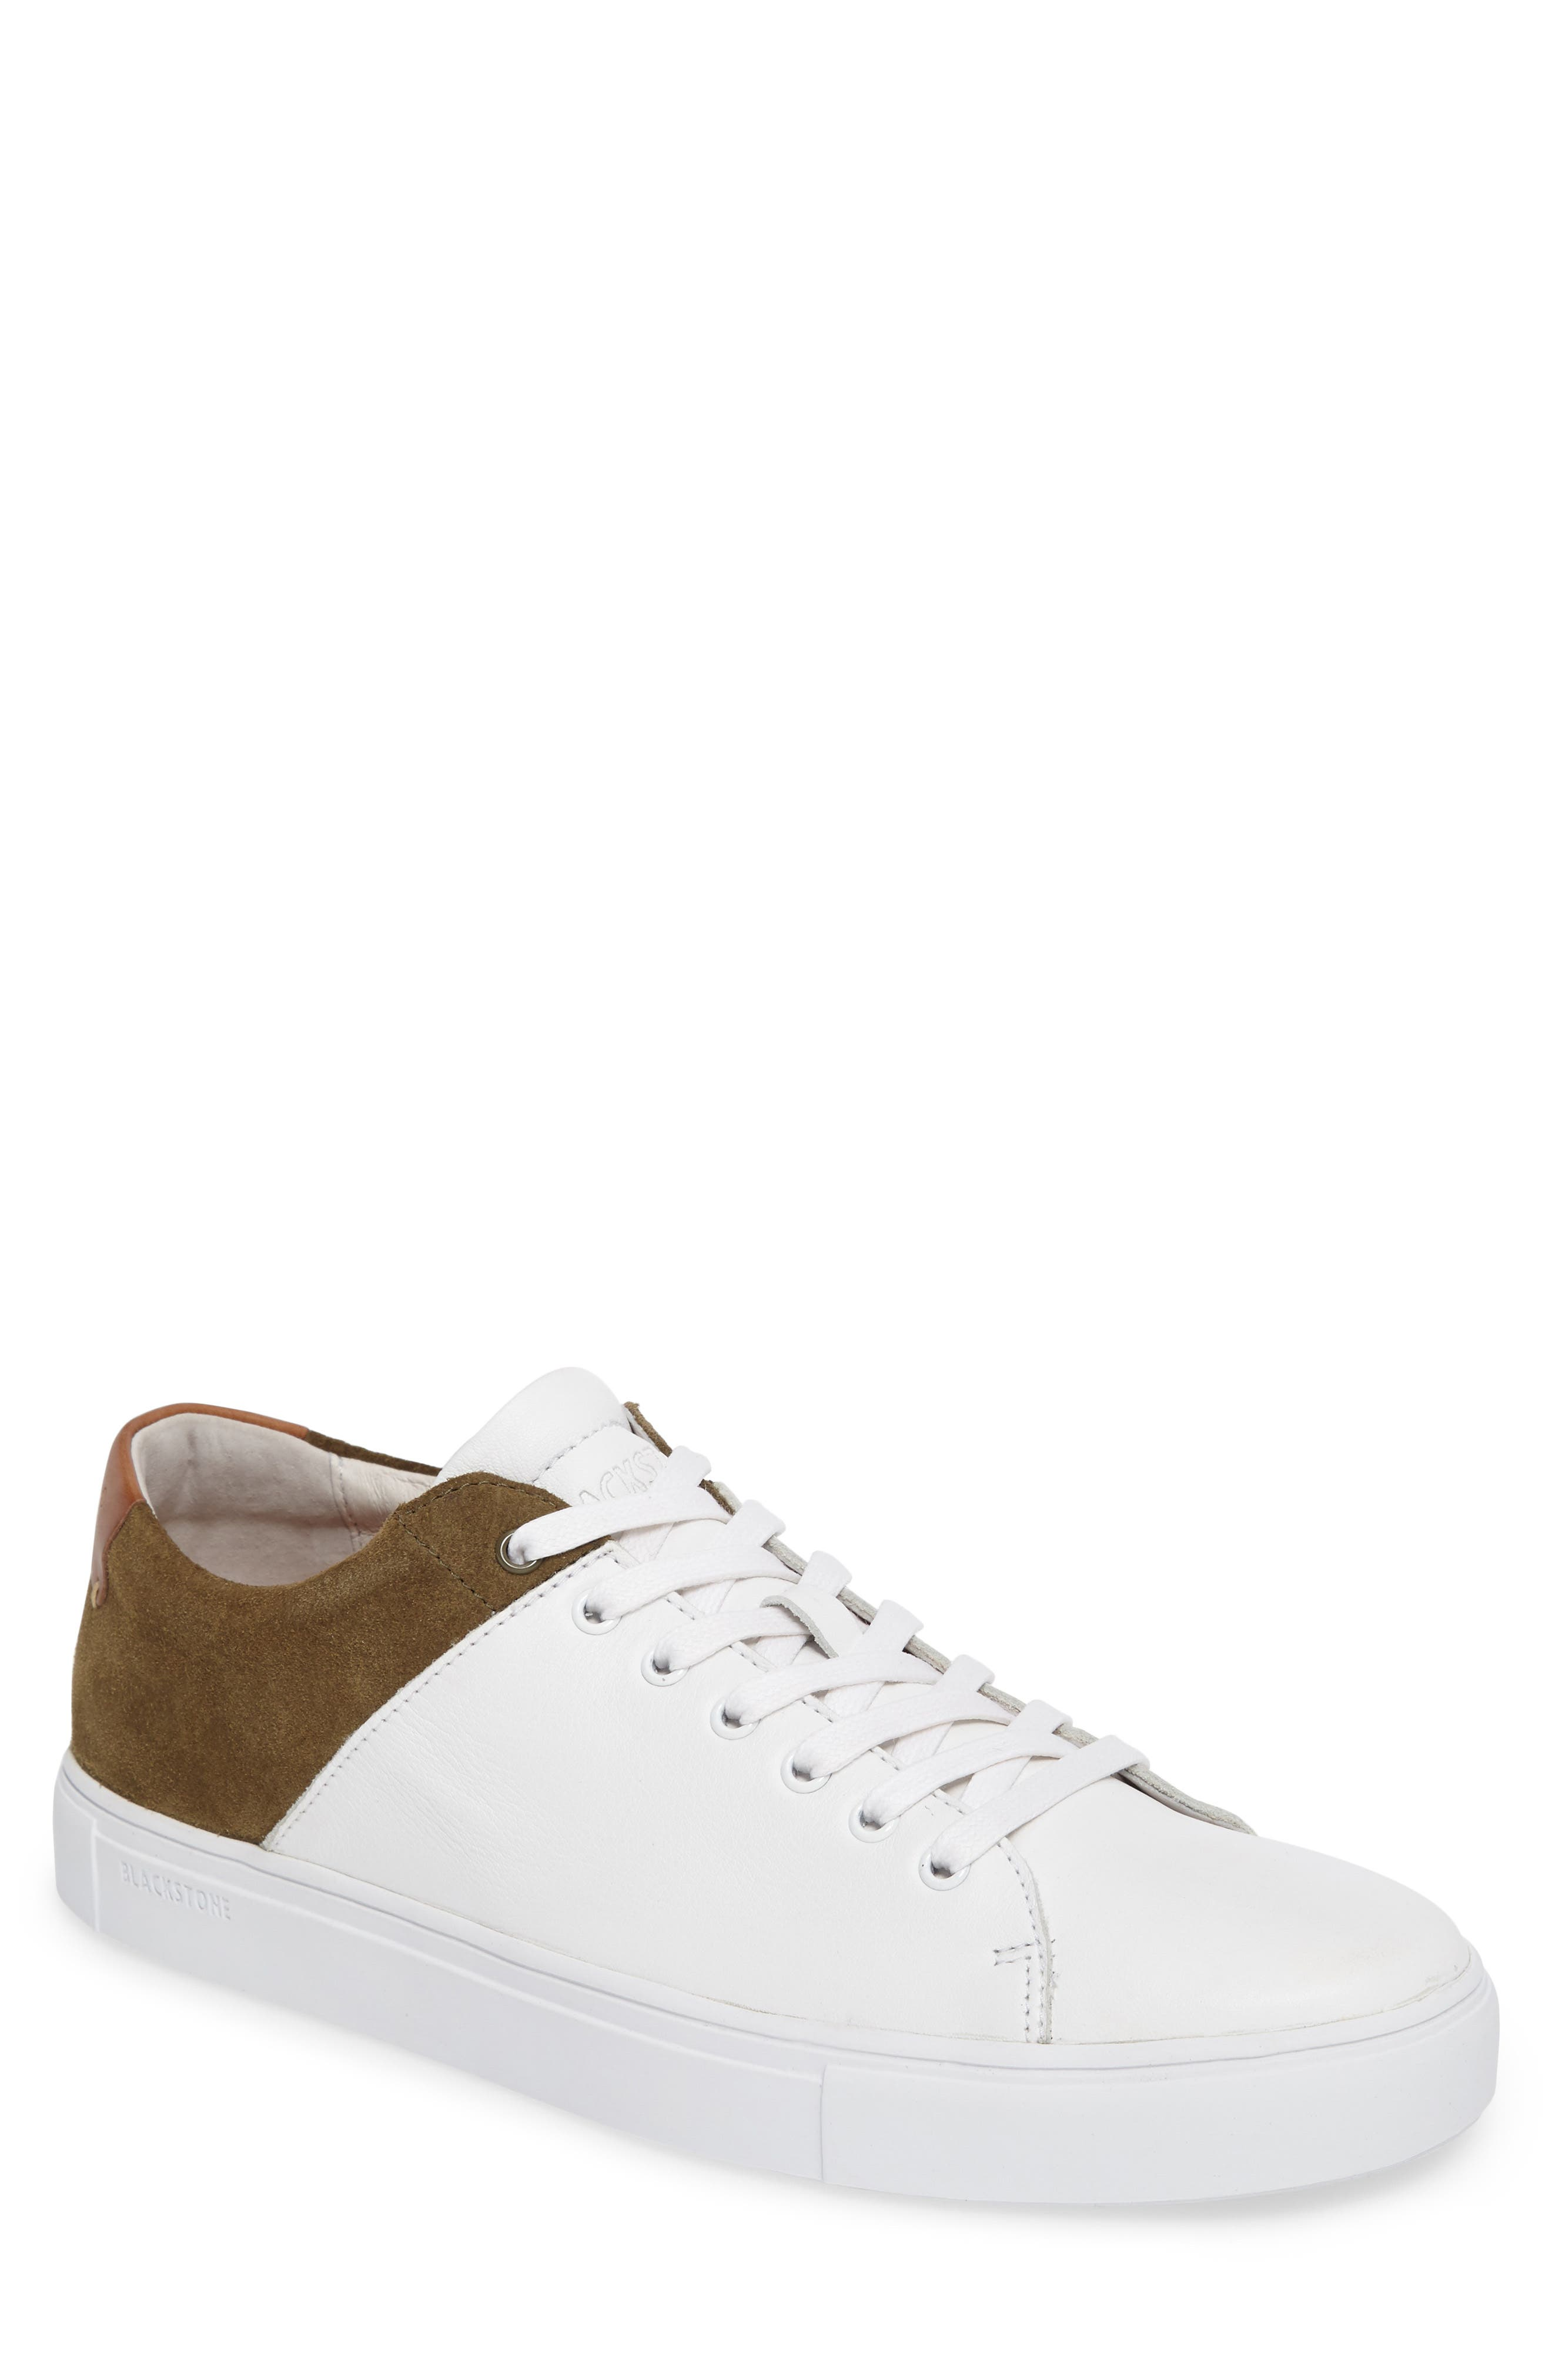 NM03 Two-Tone Sneaker,                             Main thumbnail 1, color,                             White/ Olive Leather